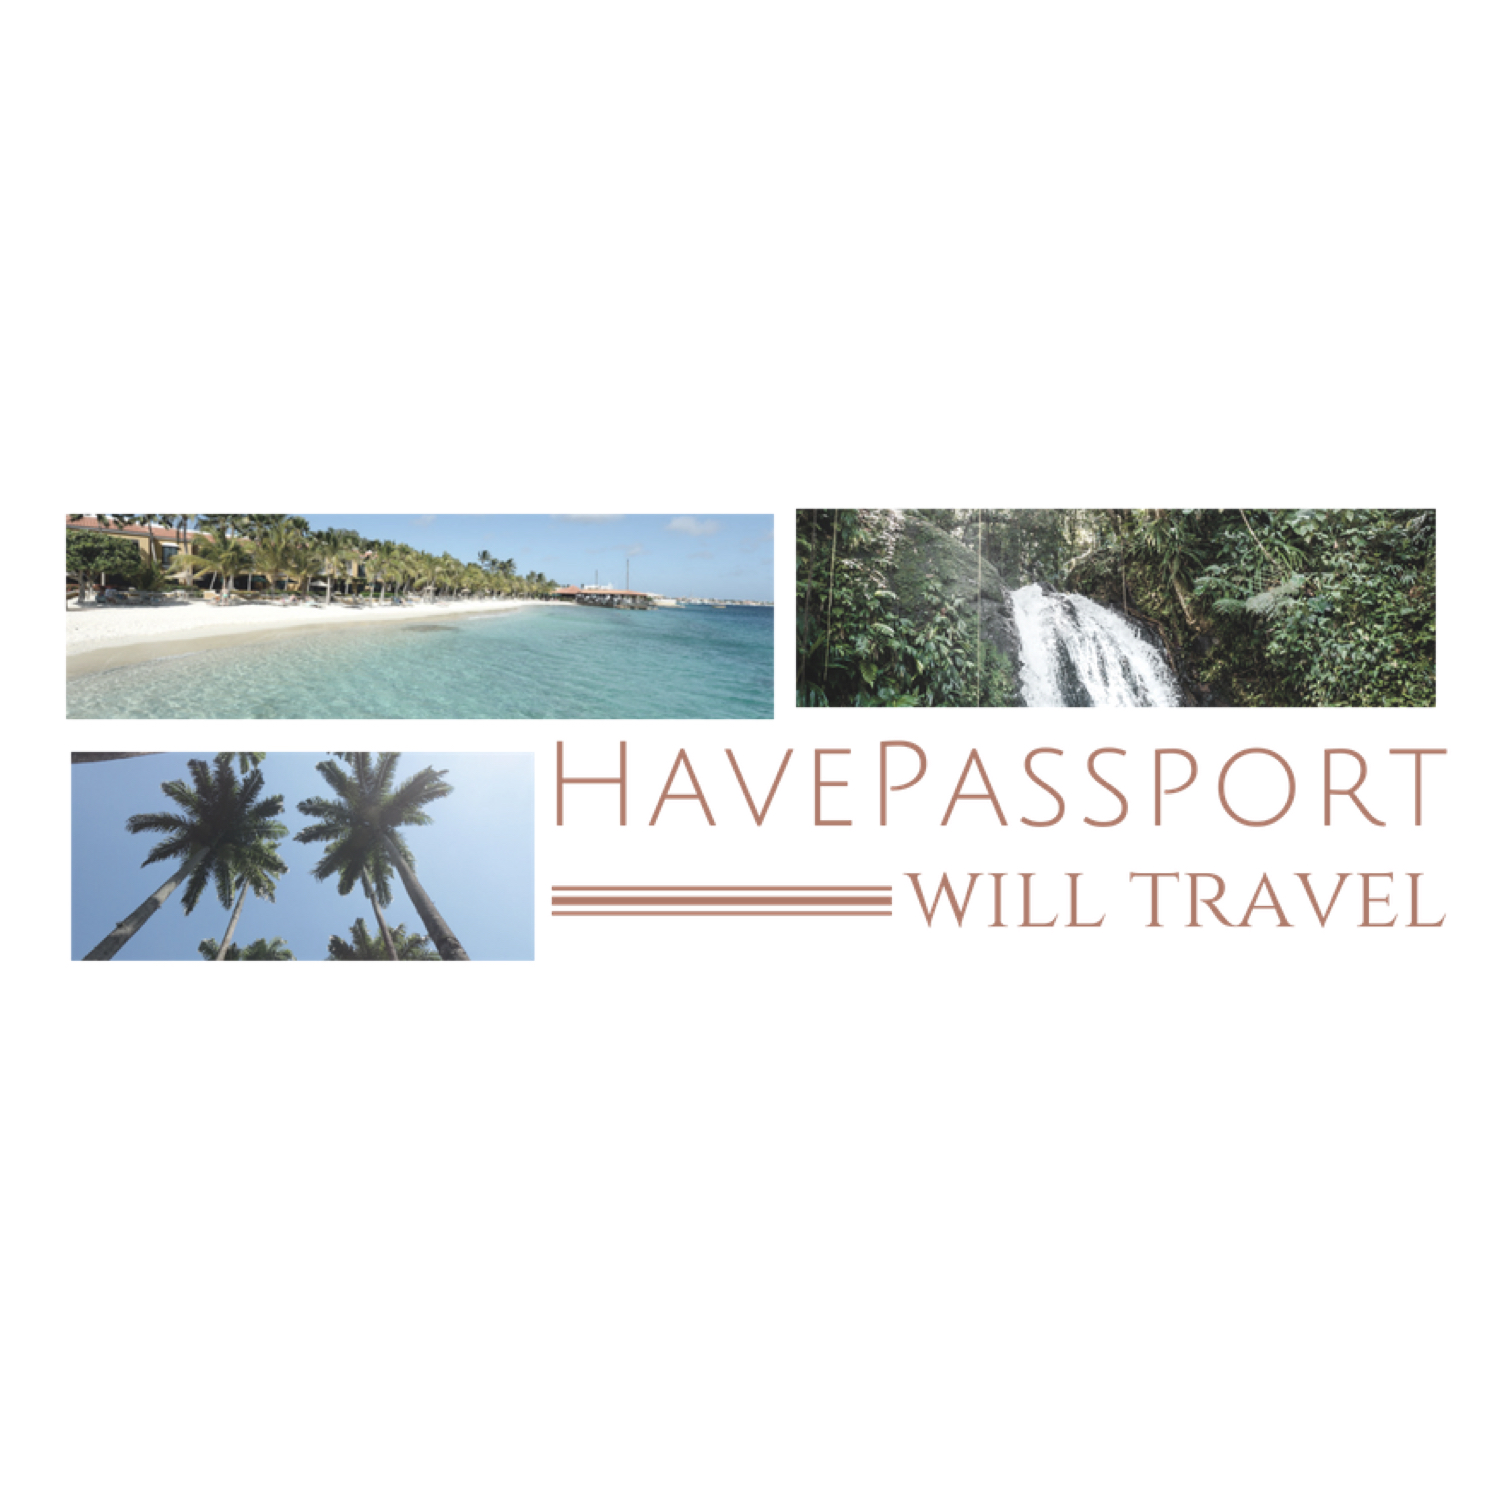 Have Passport Will Travel   Have Passport Will Travel is a custom travel design company that's been creating itineraries throughout the world for 10+ years. Whatever your travel goals are, we will help you create an itinerary and experience that will provide joy-filled memories for years to come.